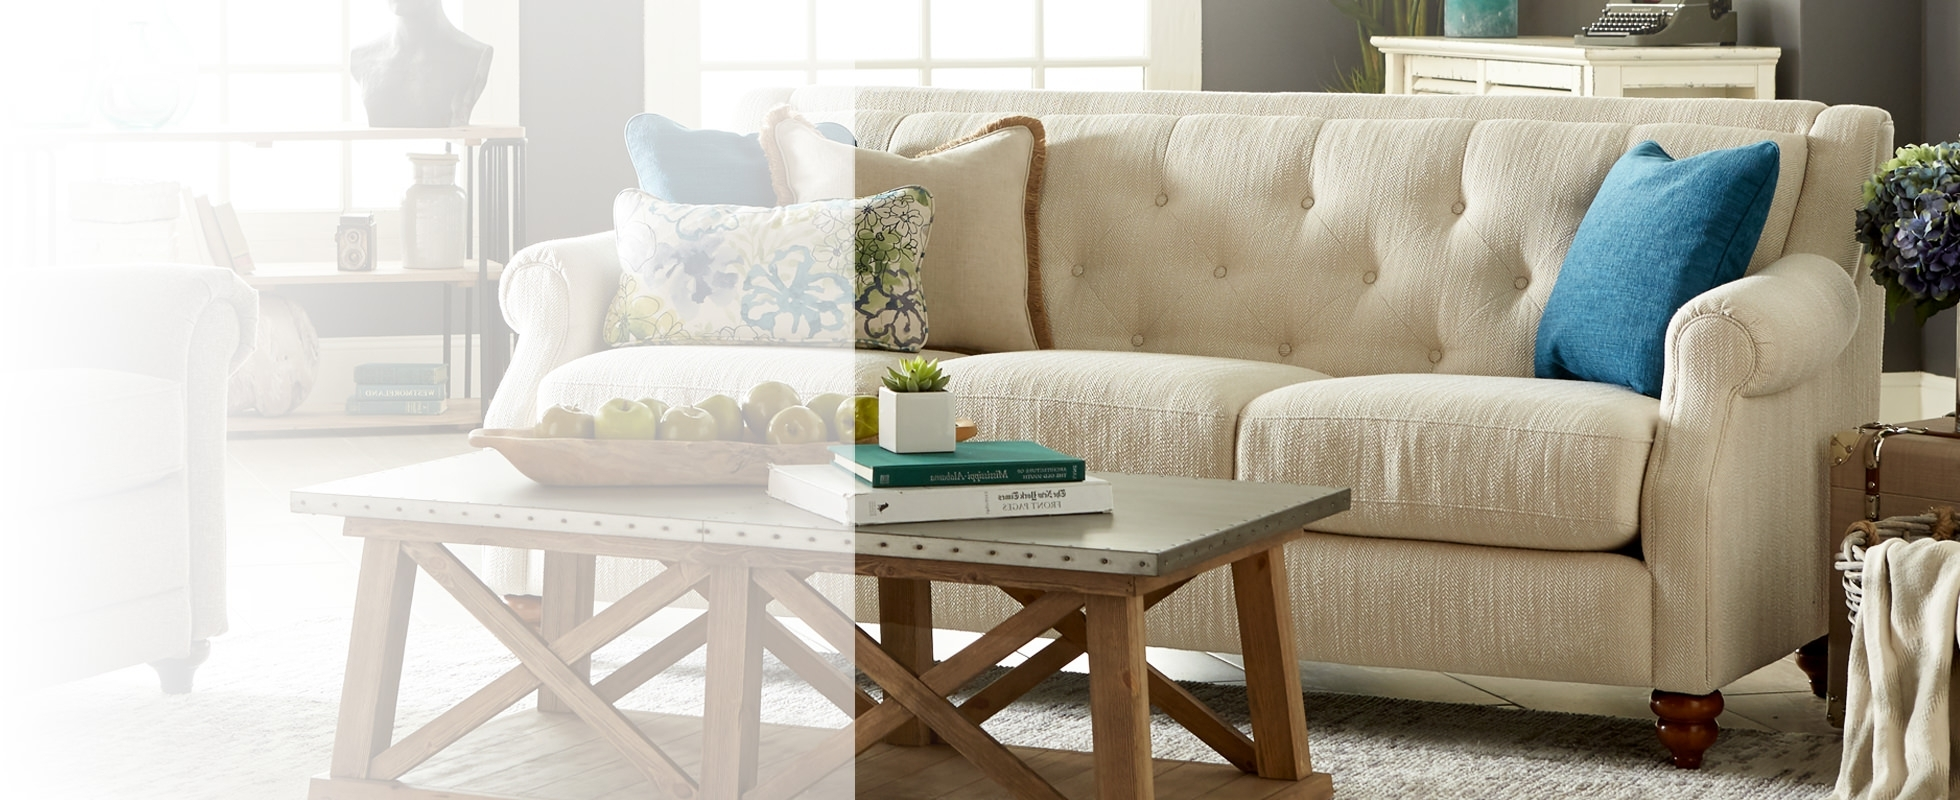 Current Turquoise Sofas Pertaining To Sofa Sets & Couch Sets (View 8 of 15)